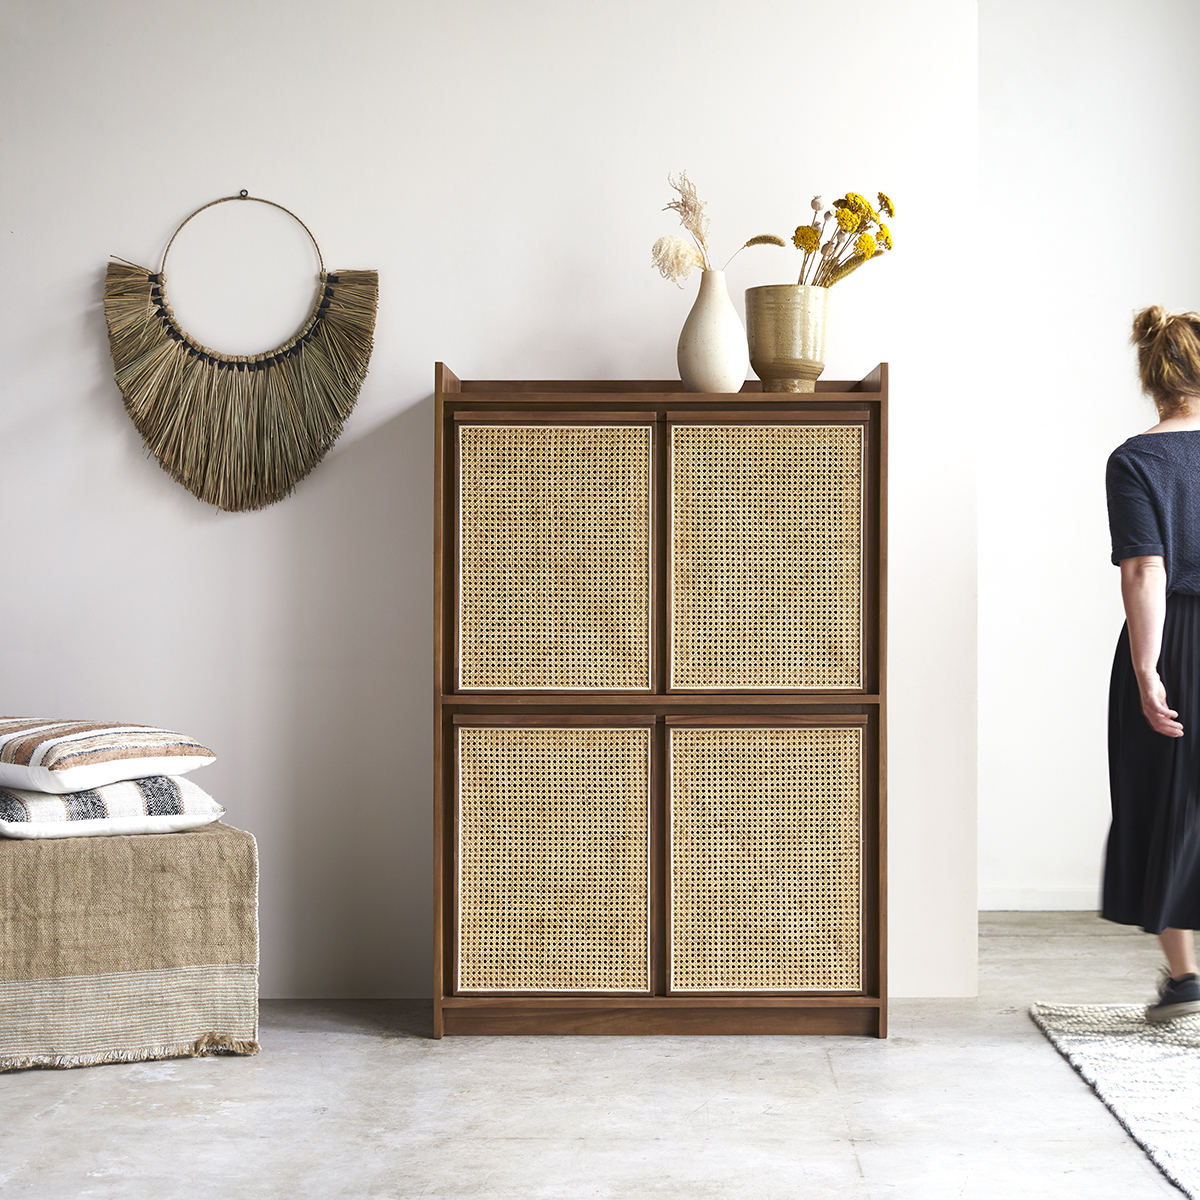 Roots solid teak and canework Wardrobe